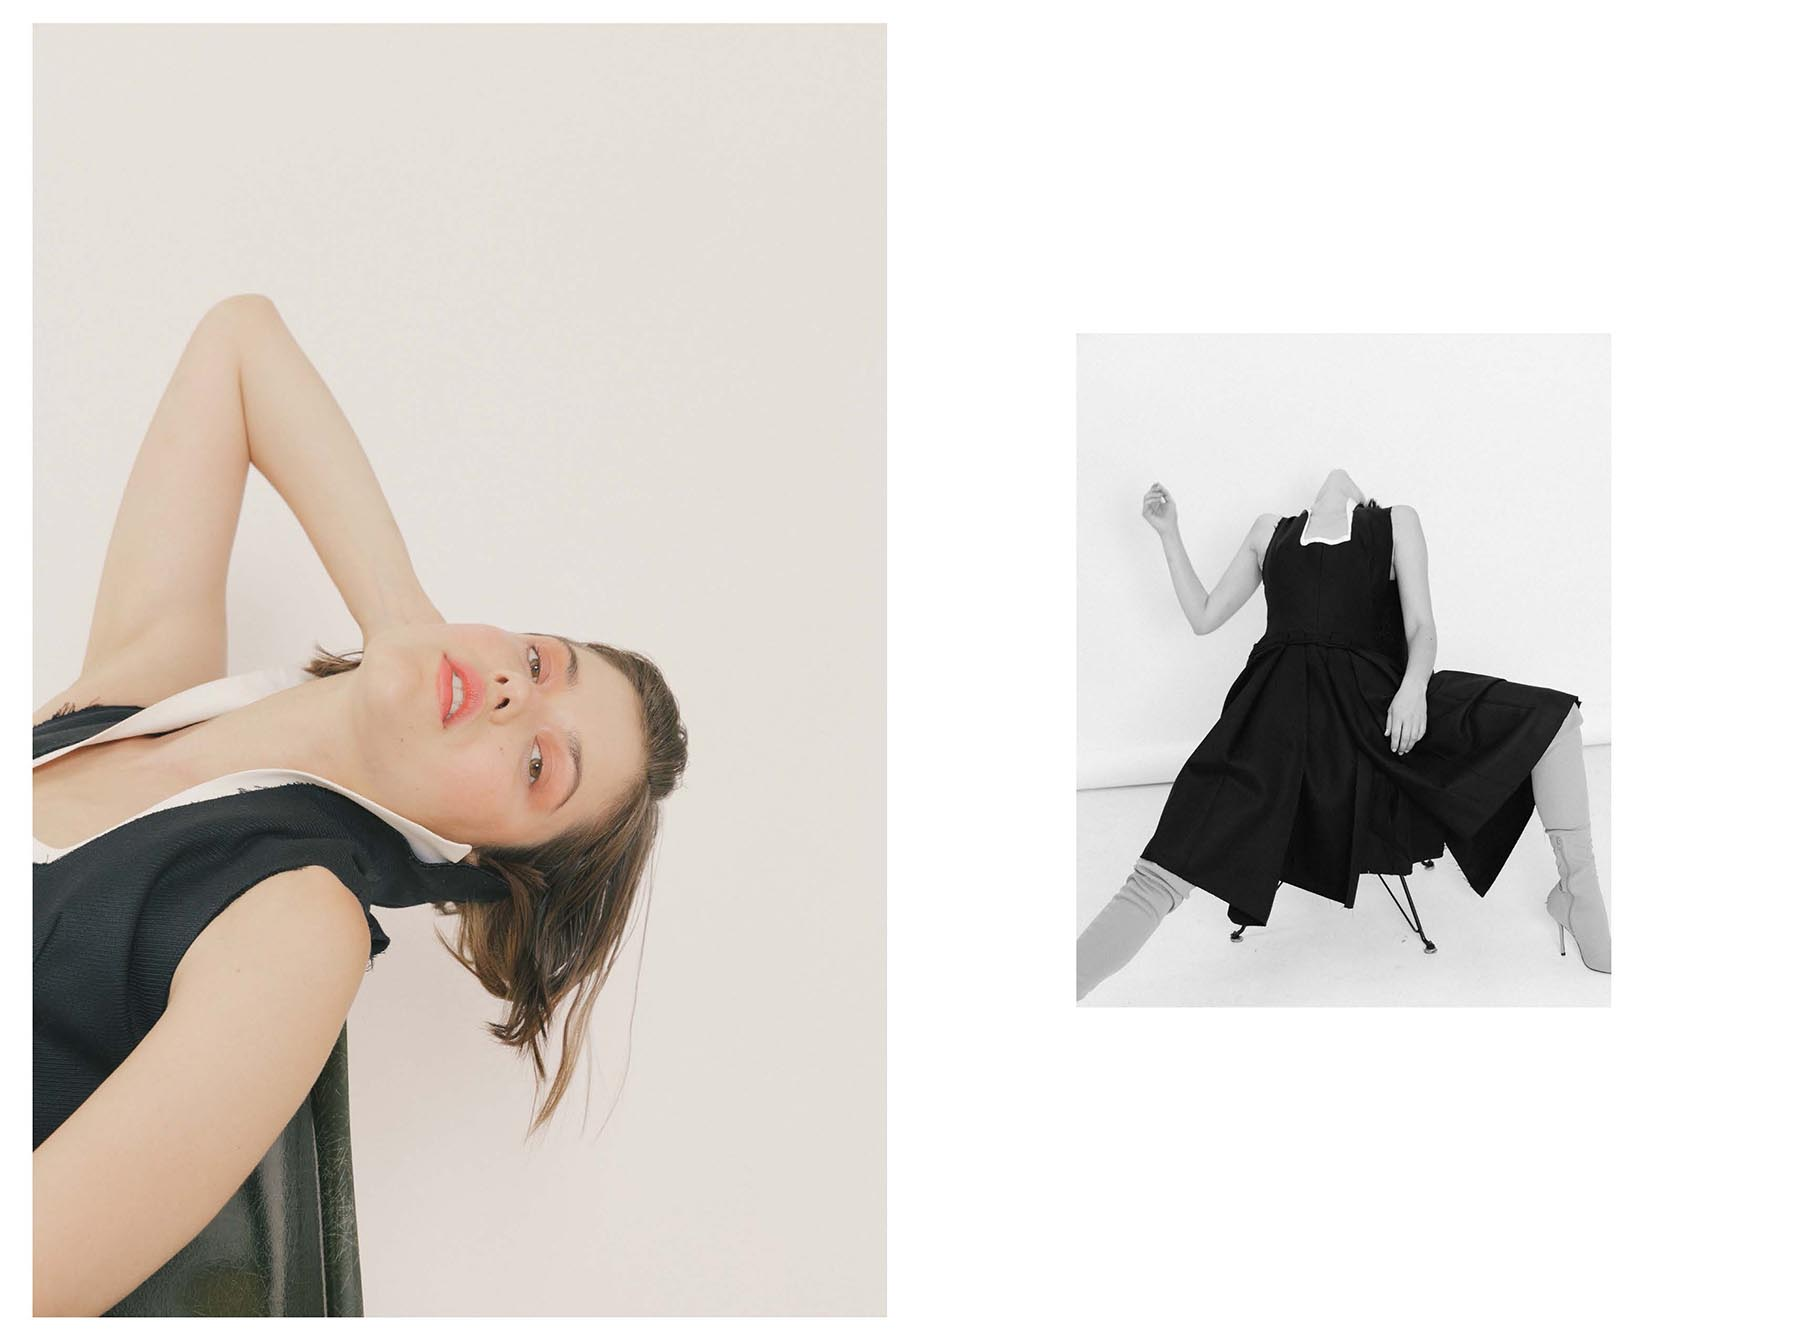 No One Told Me About Her - fashion editorial by Caitlin Taffs and Heidi Tappis